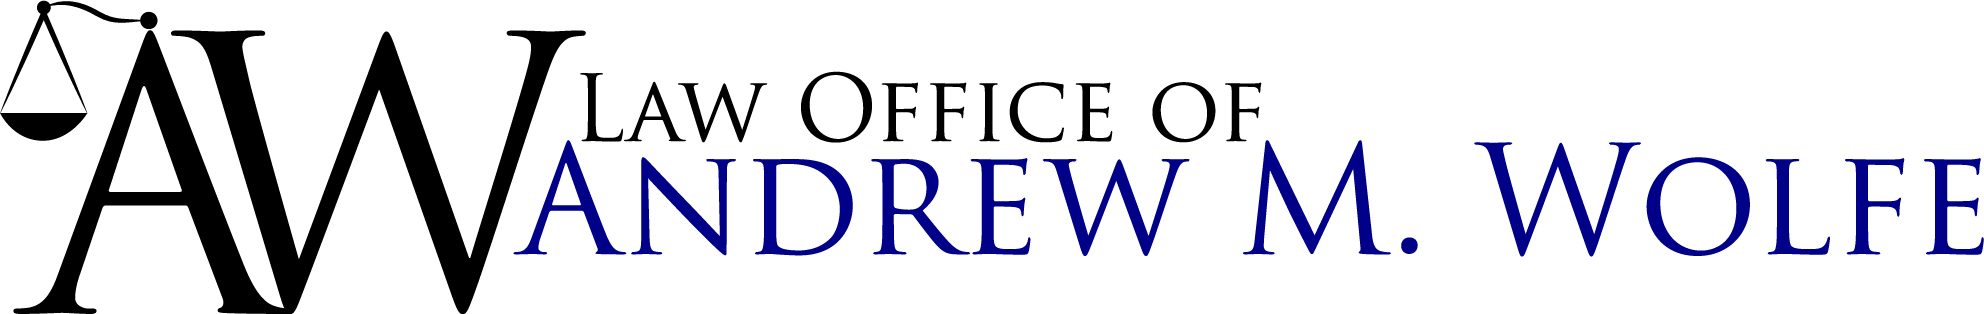 Law Office of Andrew M. Wolfe